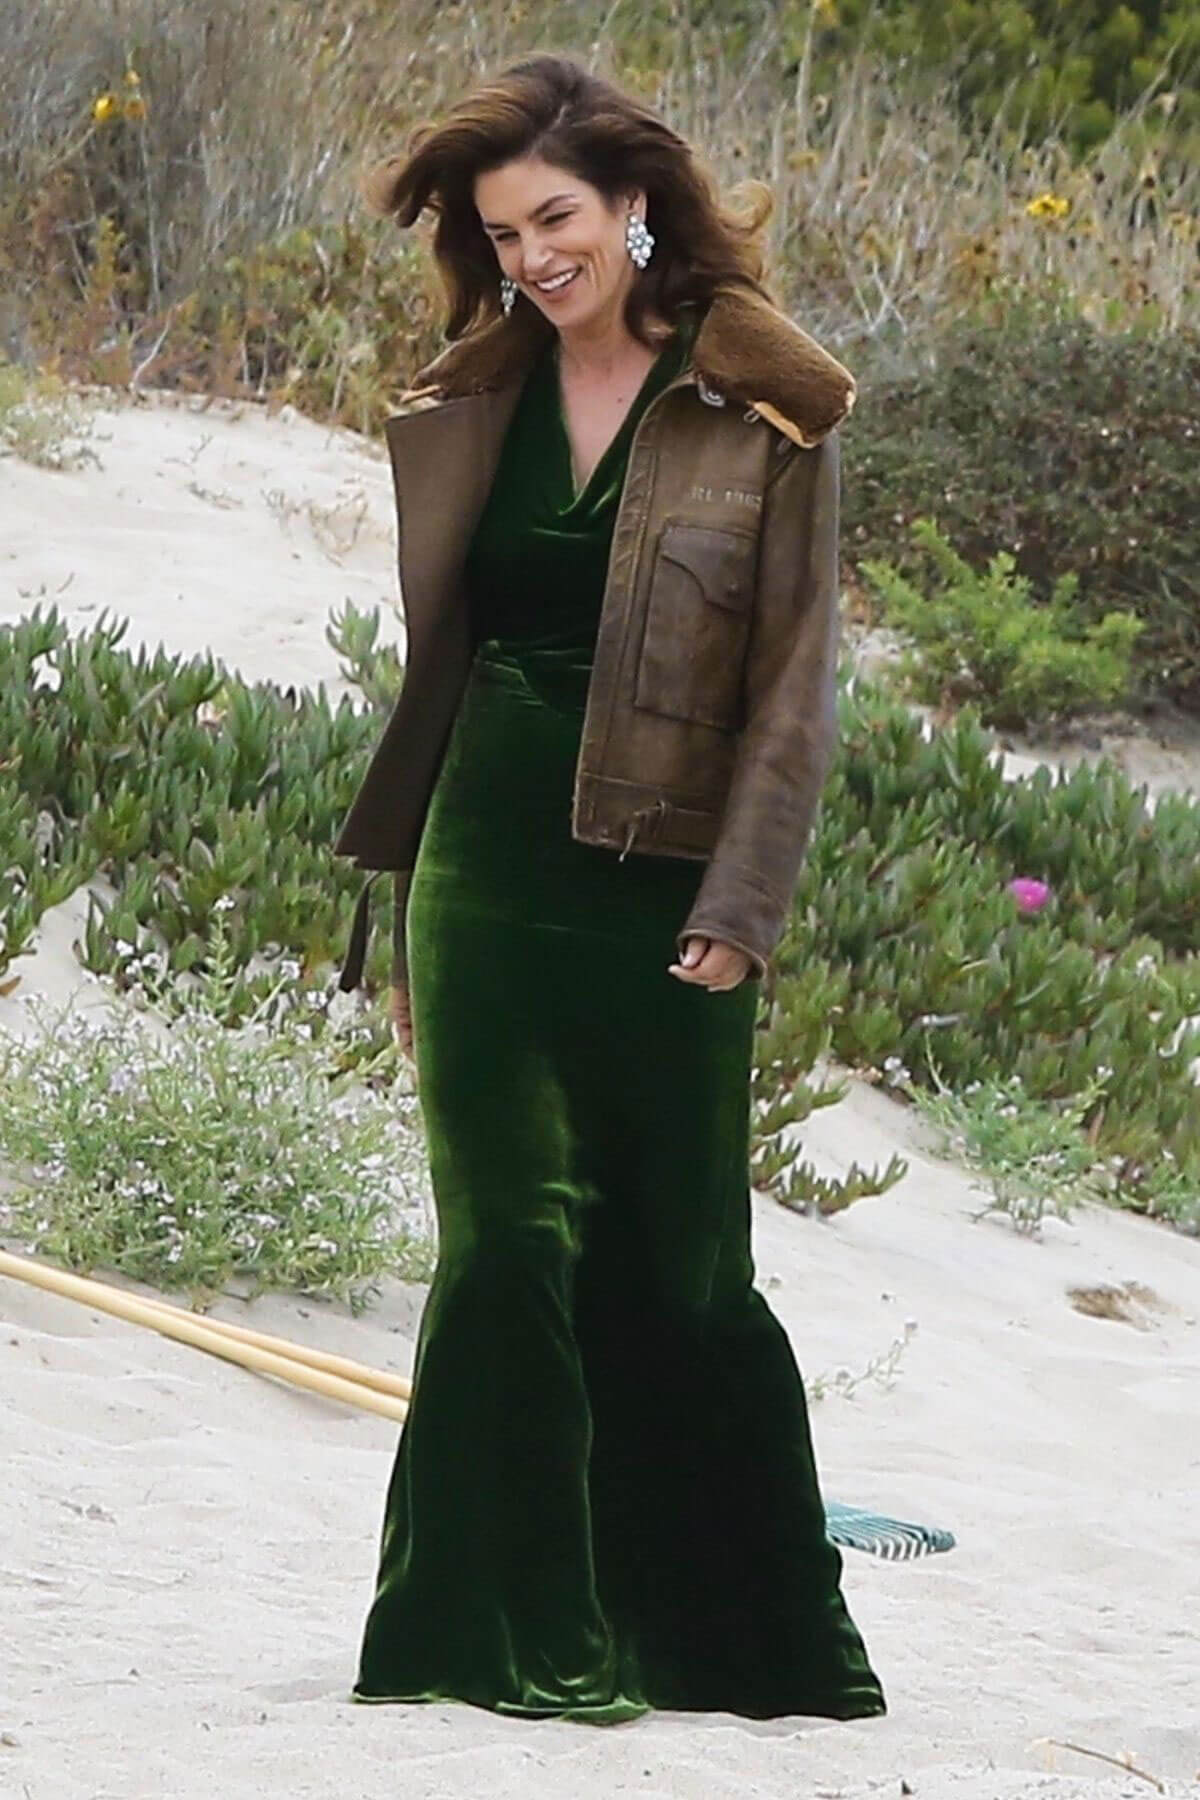 Cindy Crawford wears Black Dress on the Set of a Photoshoot at a Beach in Malibu 2018/05/24 16